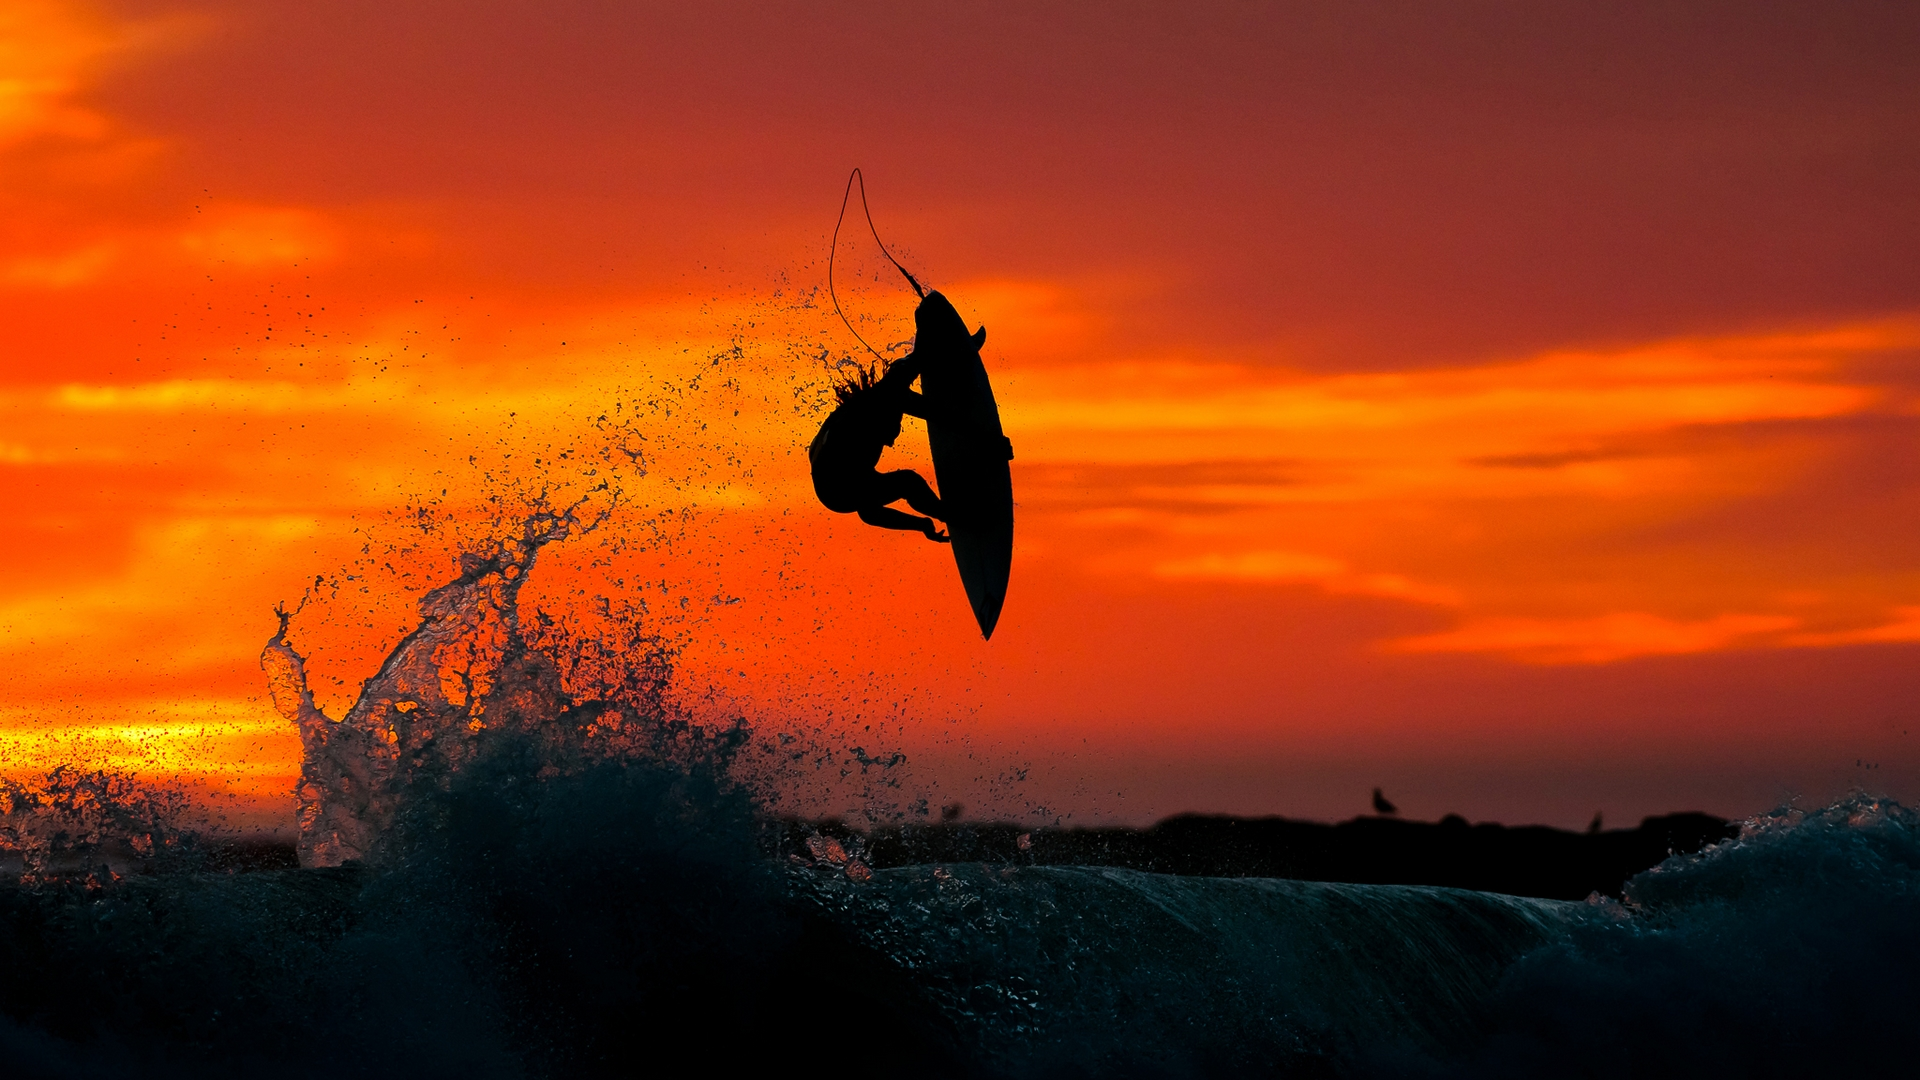 Surfing Wallpapers - Wallpaper, High Definition, High Quality ...